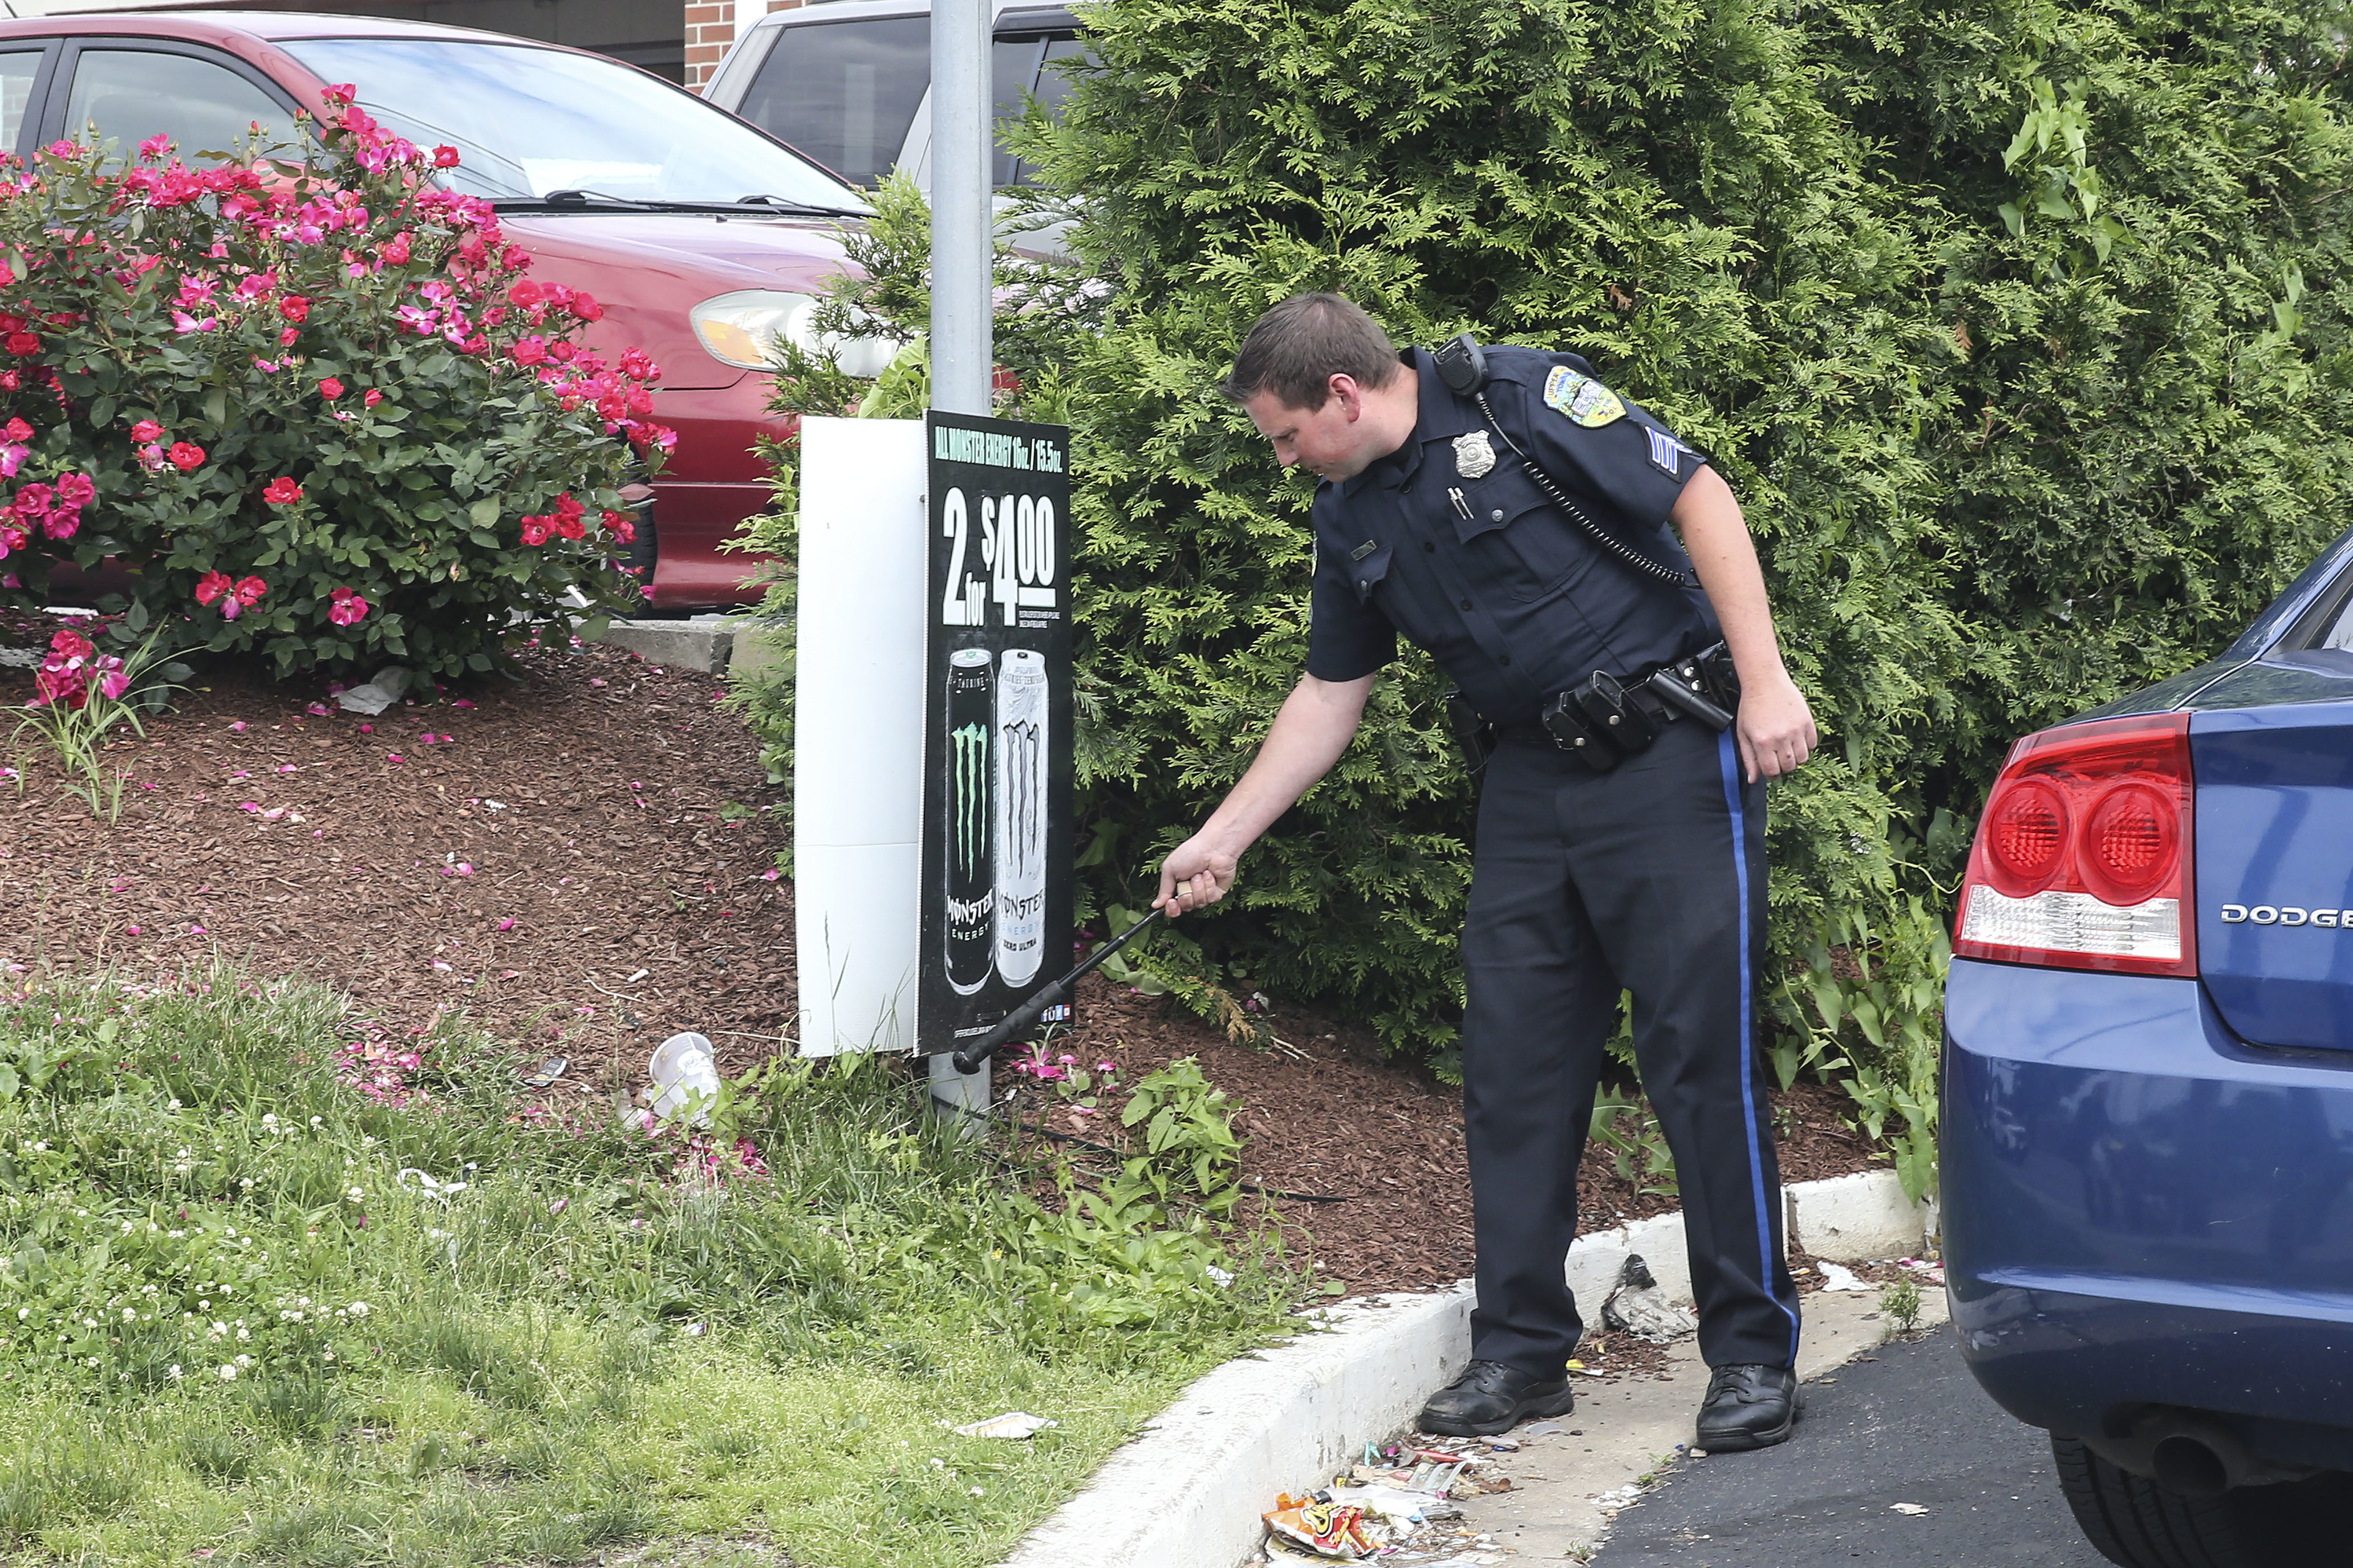 Upper Darby Police search for evidence near a gas station at State Road and Lansdowne Avenue on Monday June 4, 2018 B STEVEN M. FALK / Staff Photographer